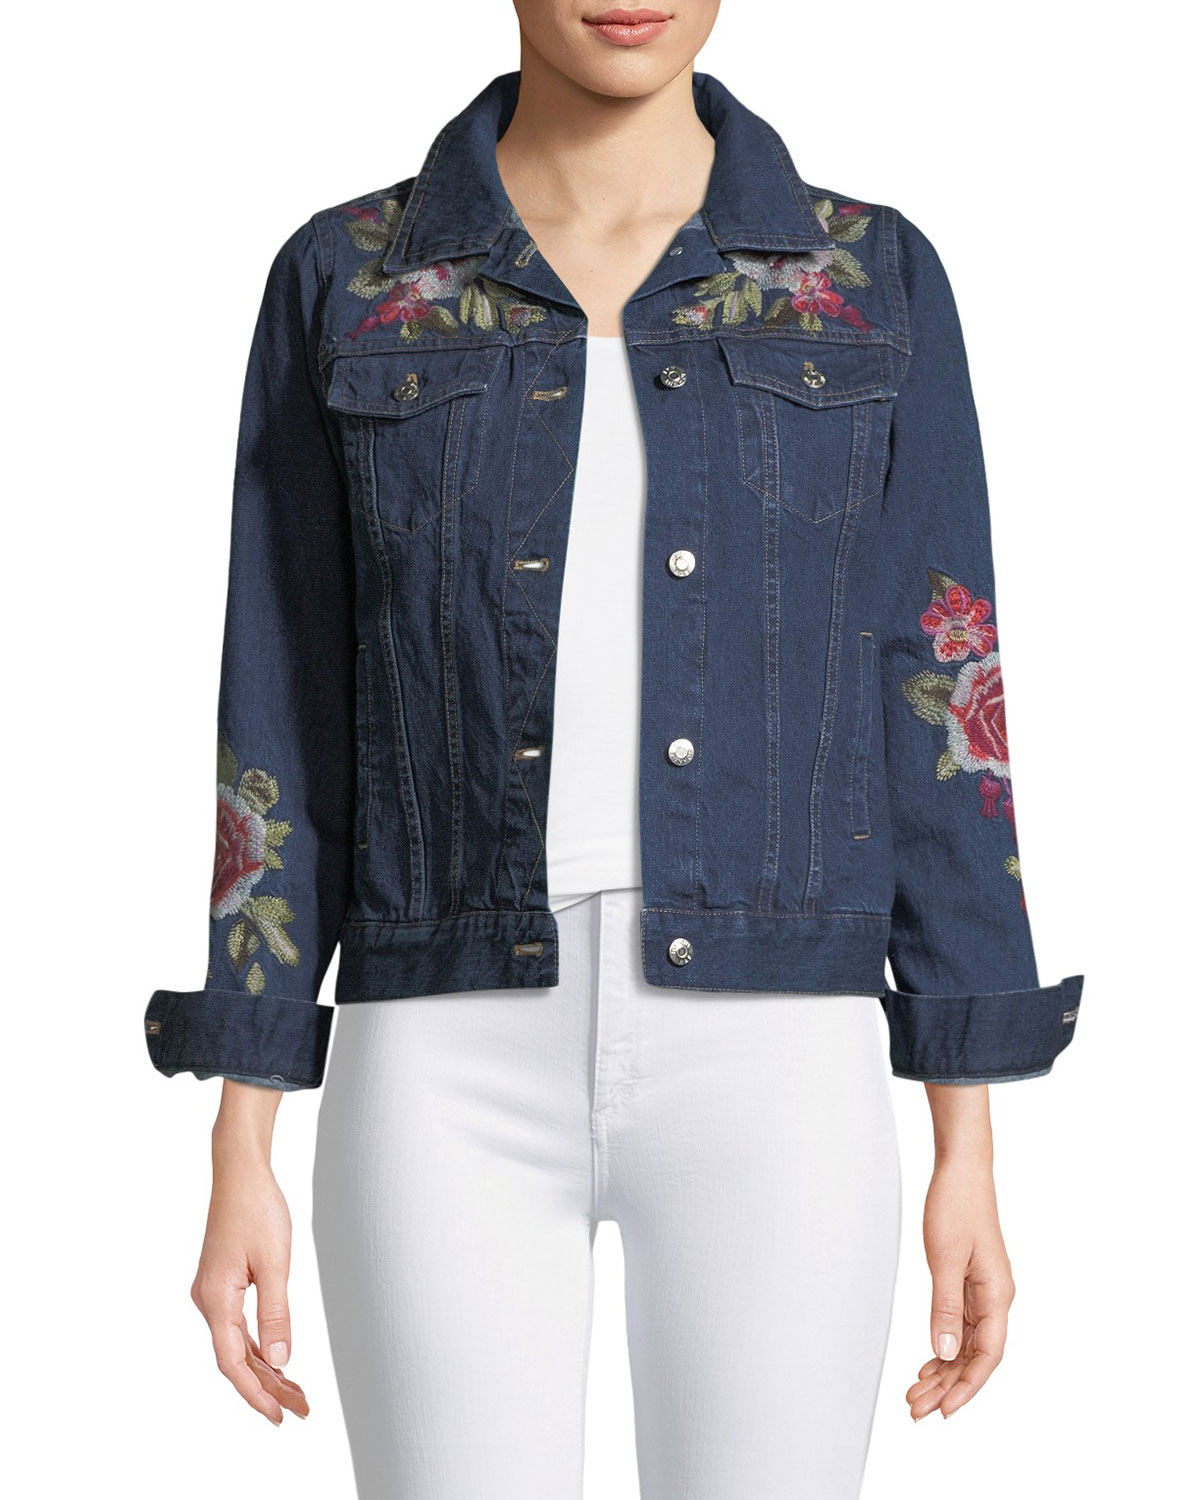 Johnny WasDesi Floral-Embroidered Denim Jacket, Petite